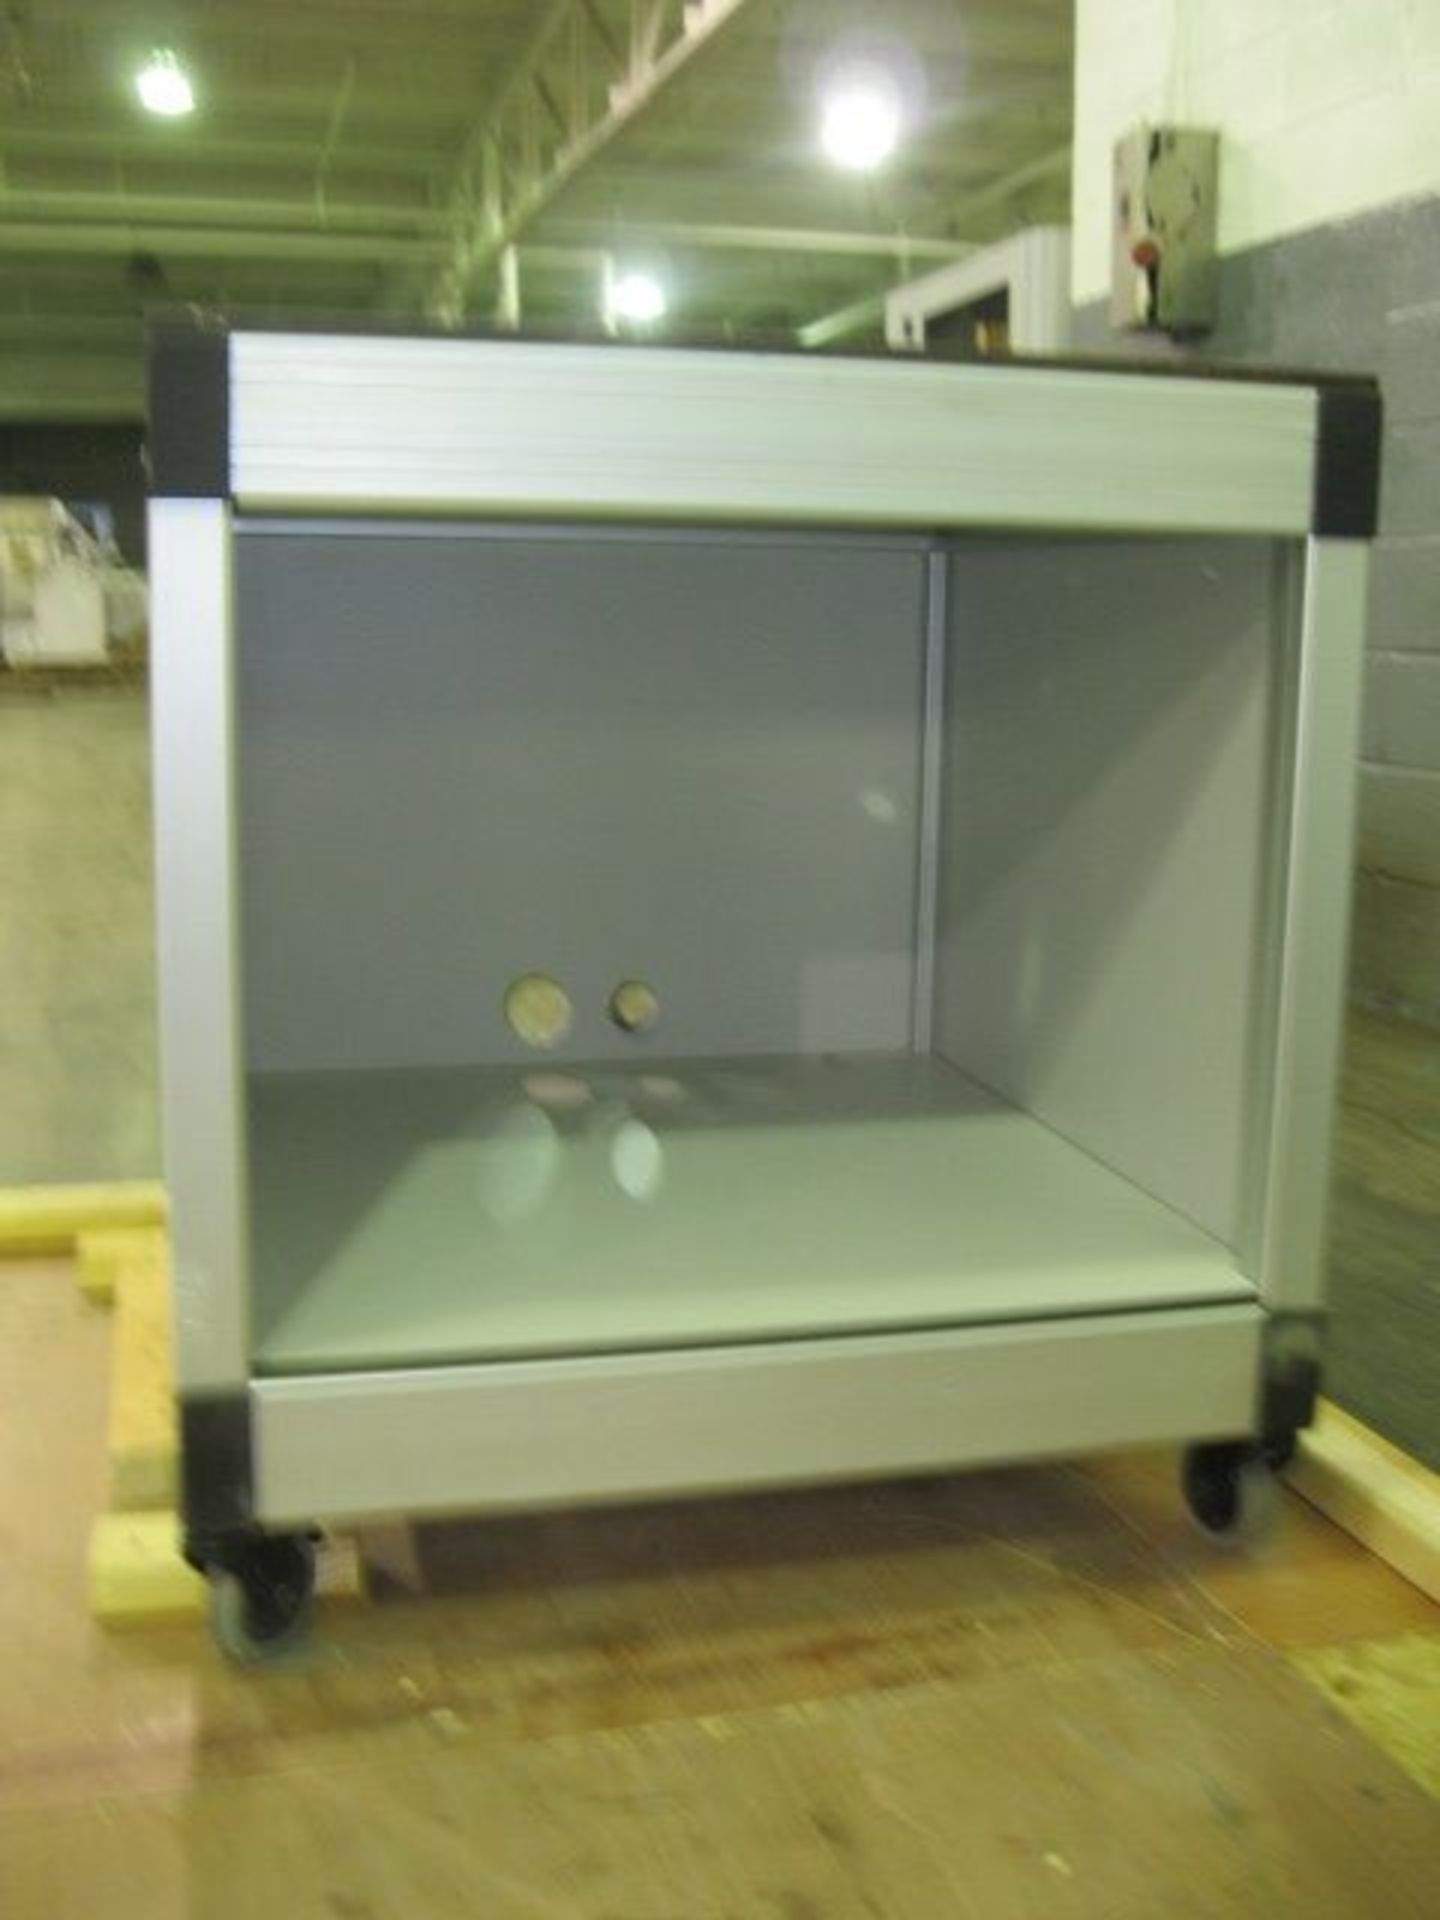 Lot 35 - Buchi lab spray dryer, glass chamber, cyclone and dust collector, with nozzle spray atomizer